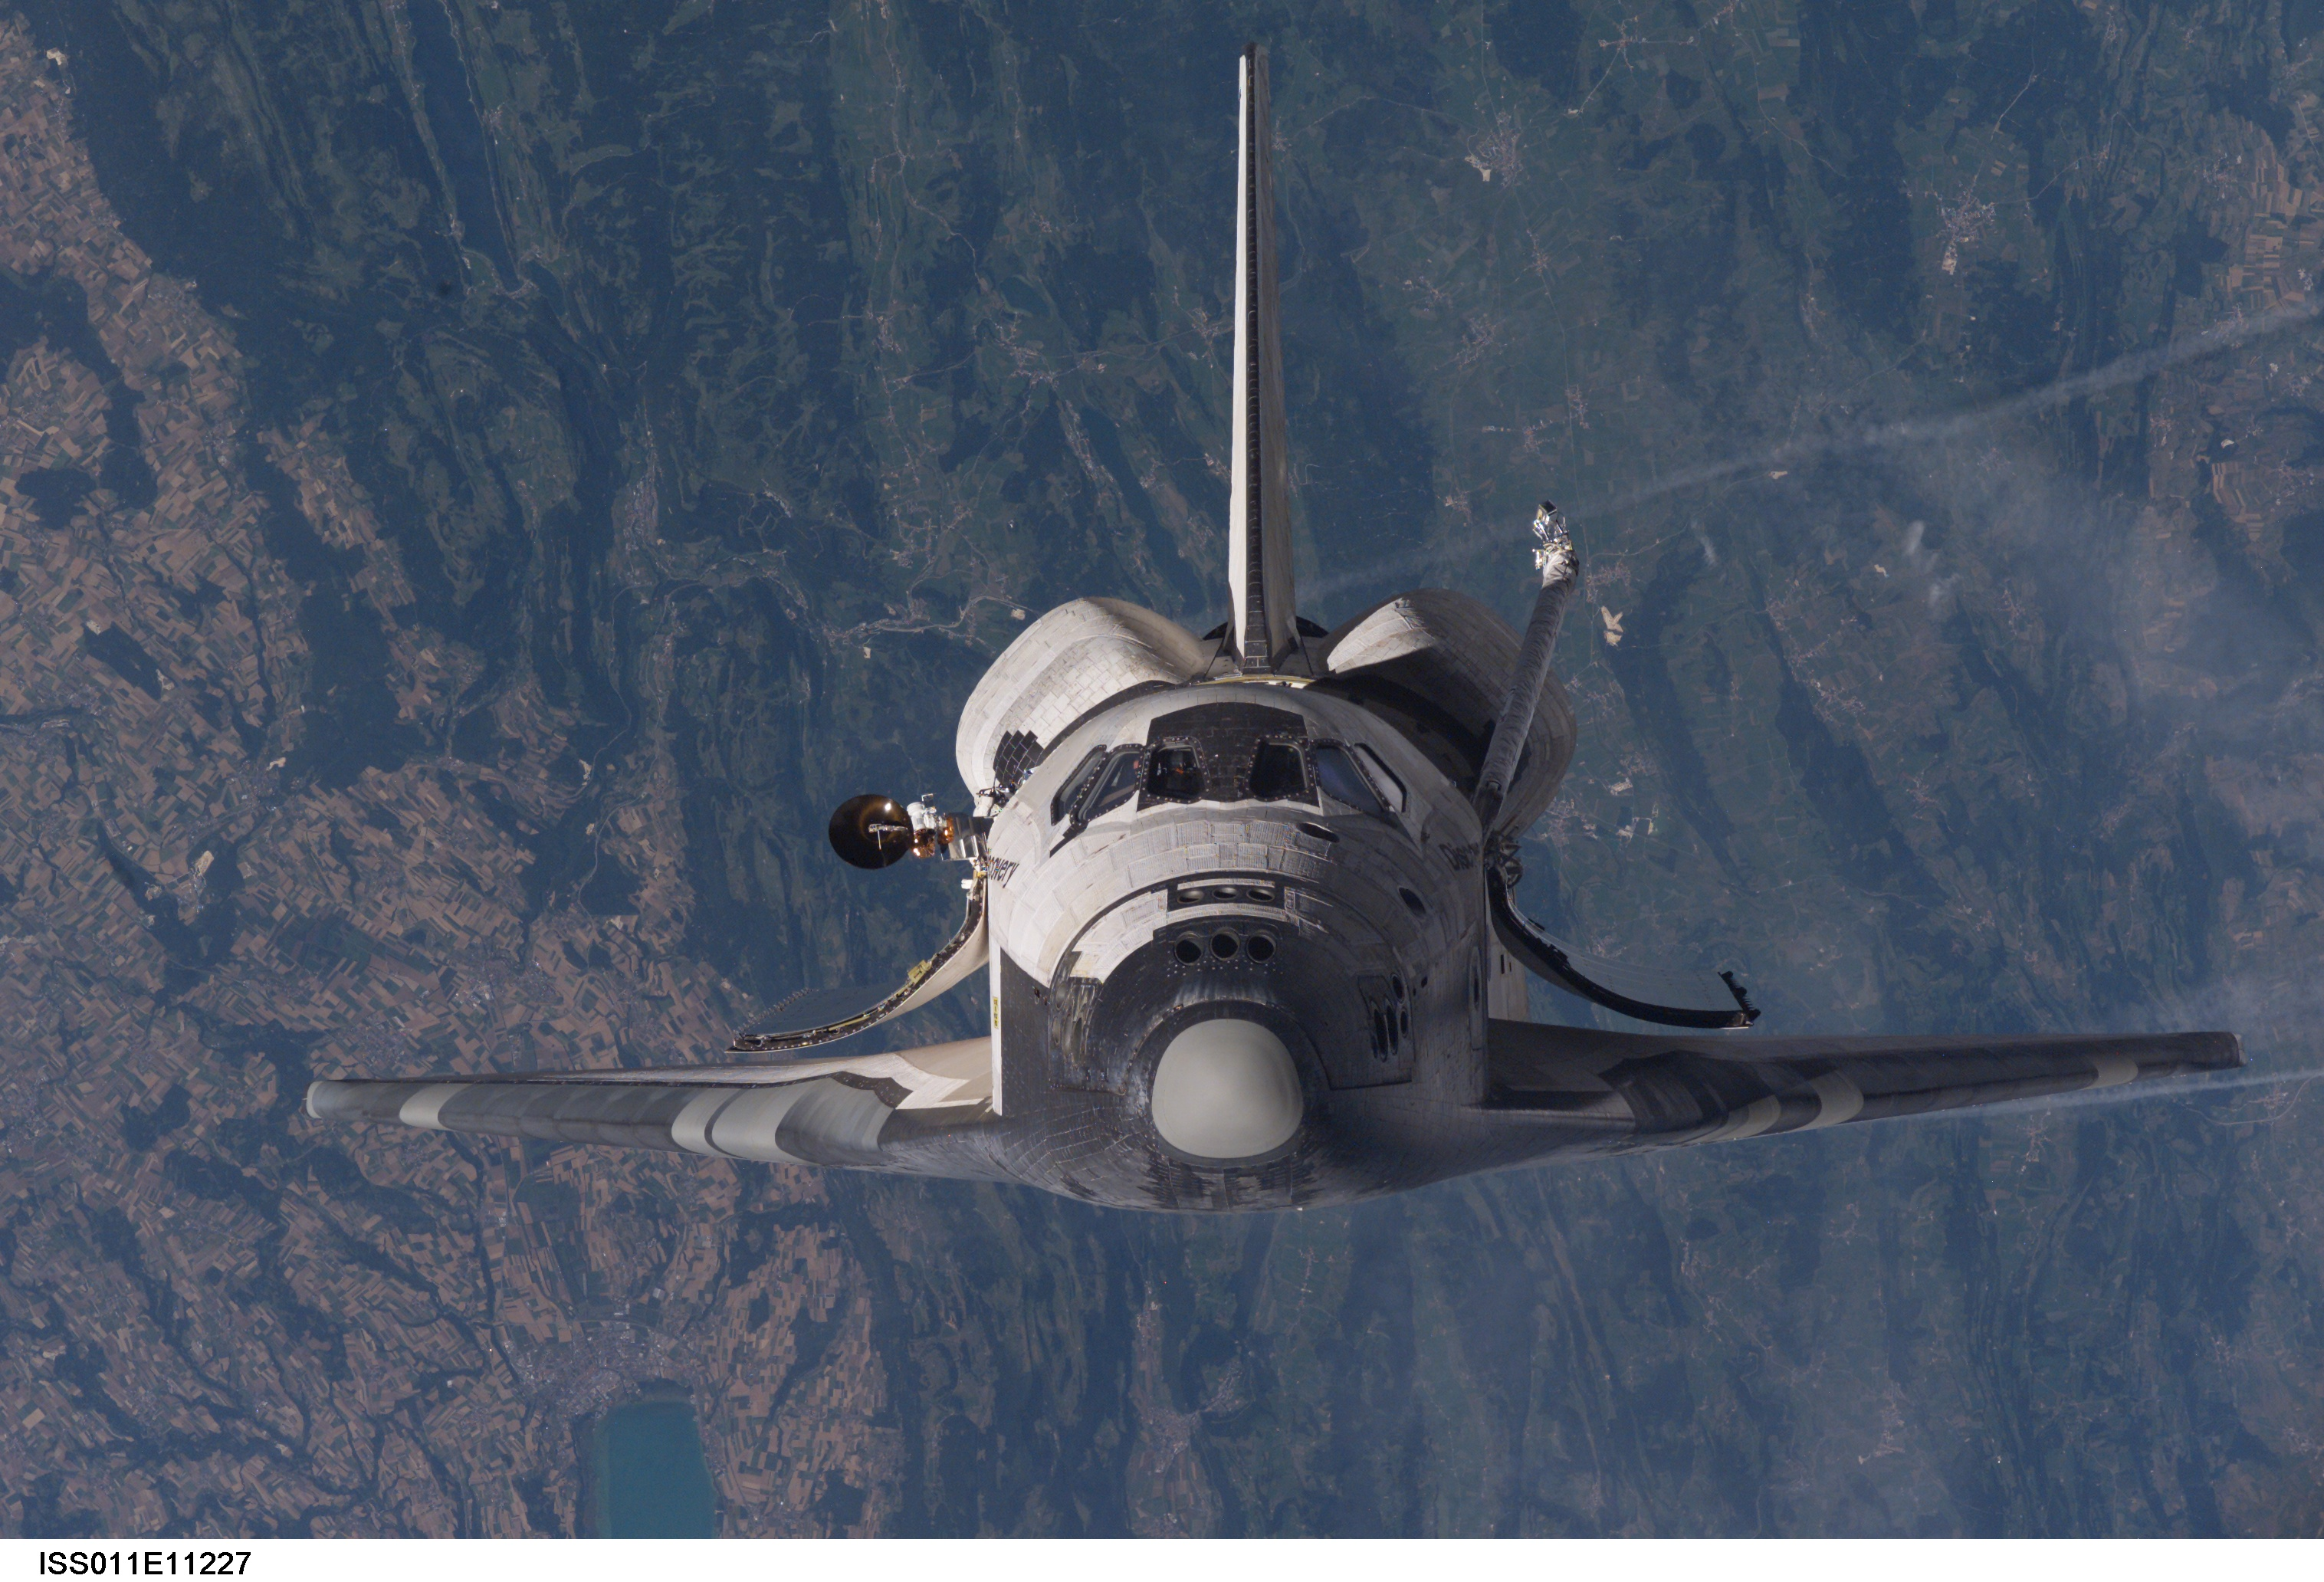 space shuttle to iss - photo #23